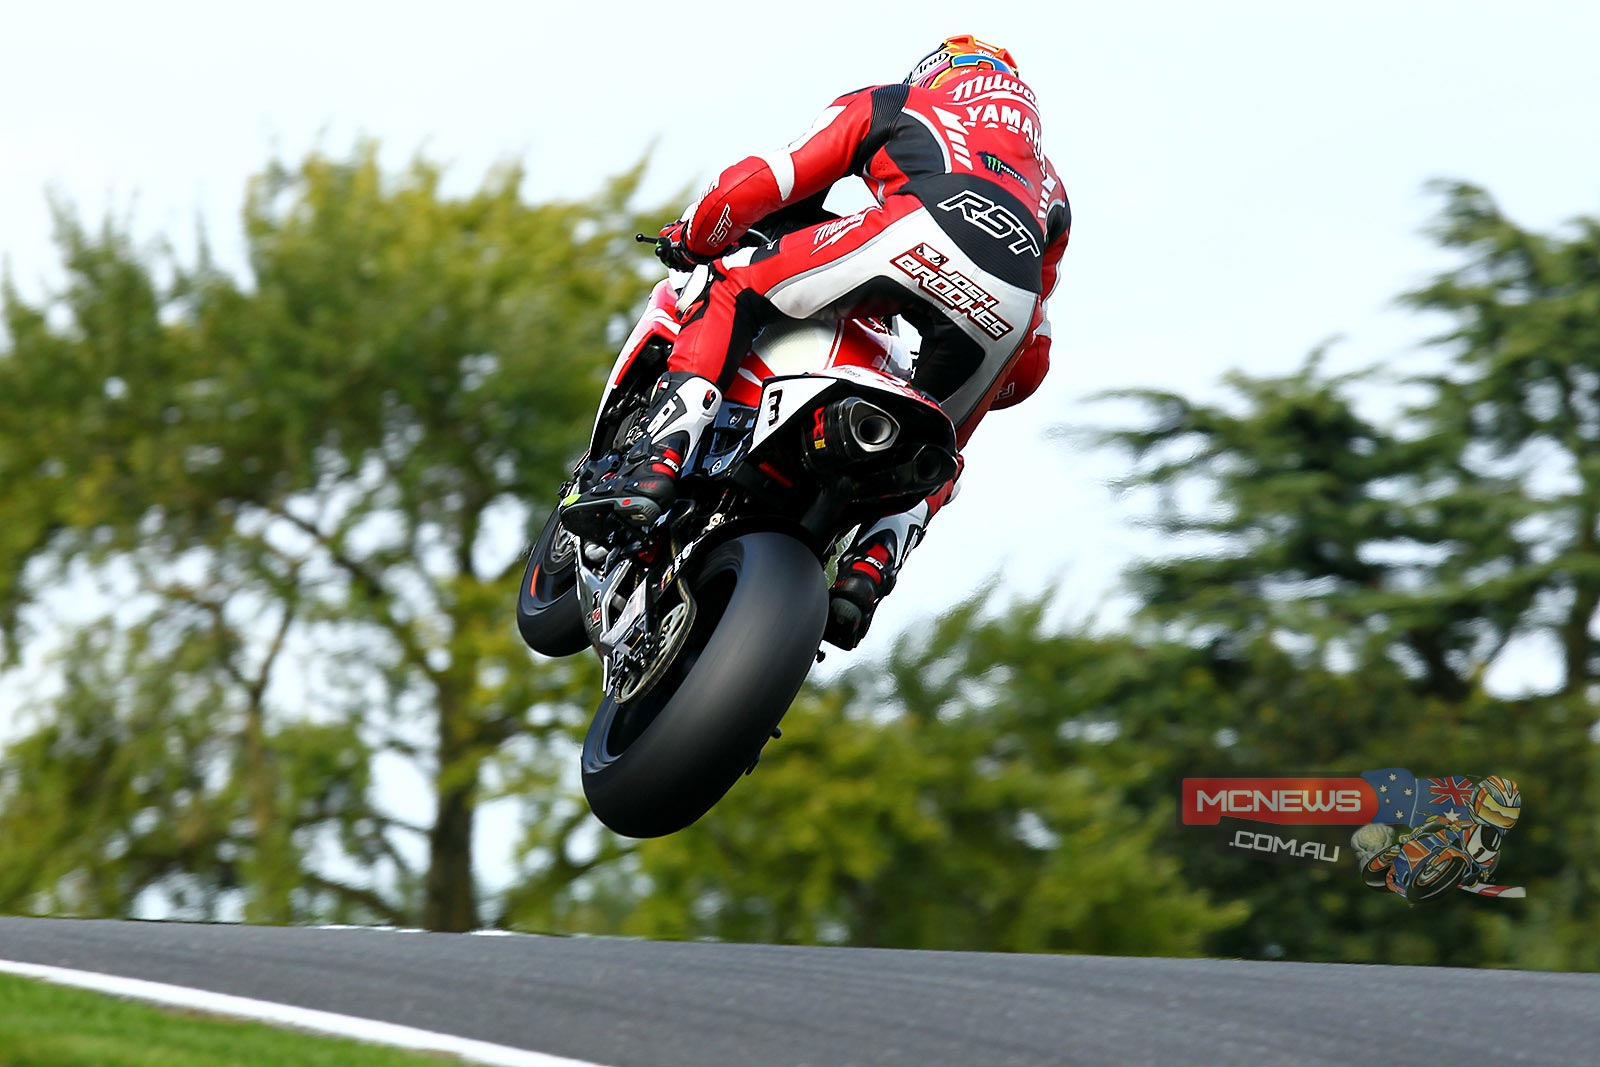 Josh Brookes spectacular at Cadwell Park but struggling a little for pace